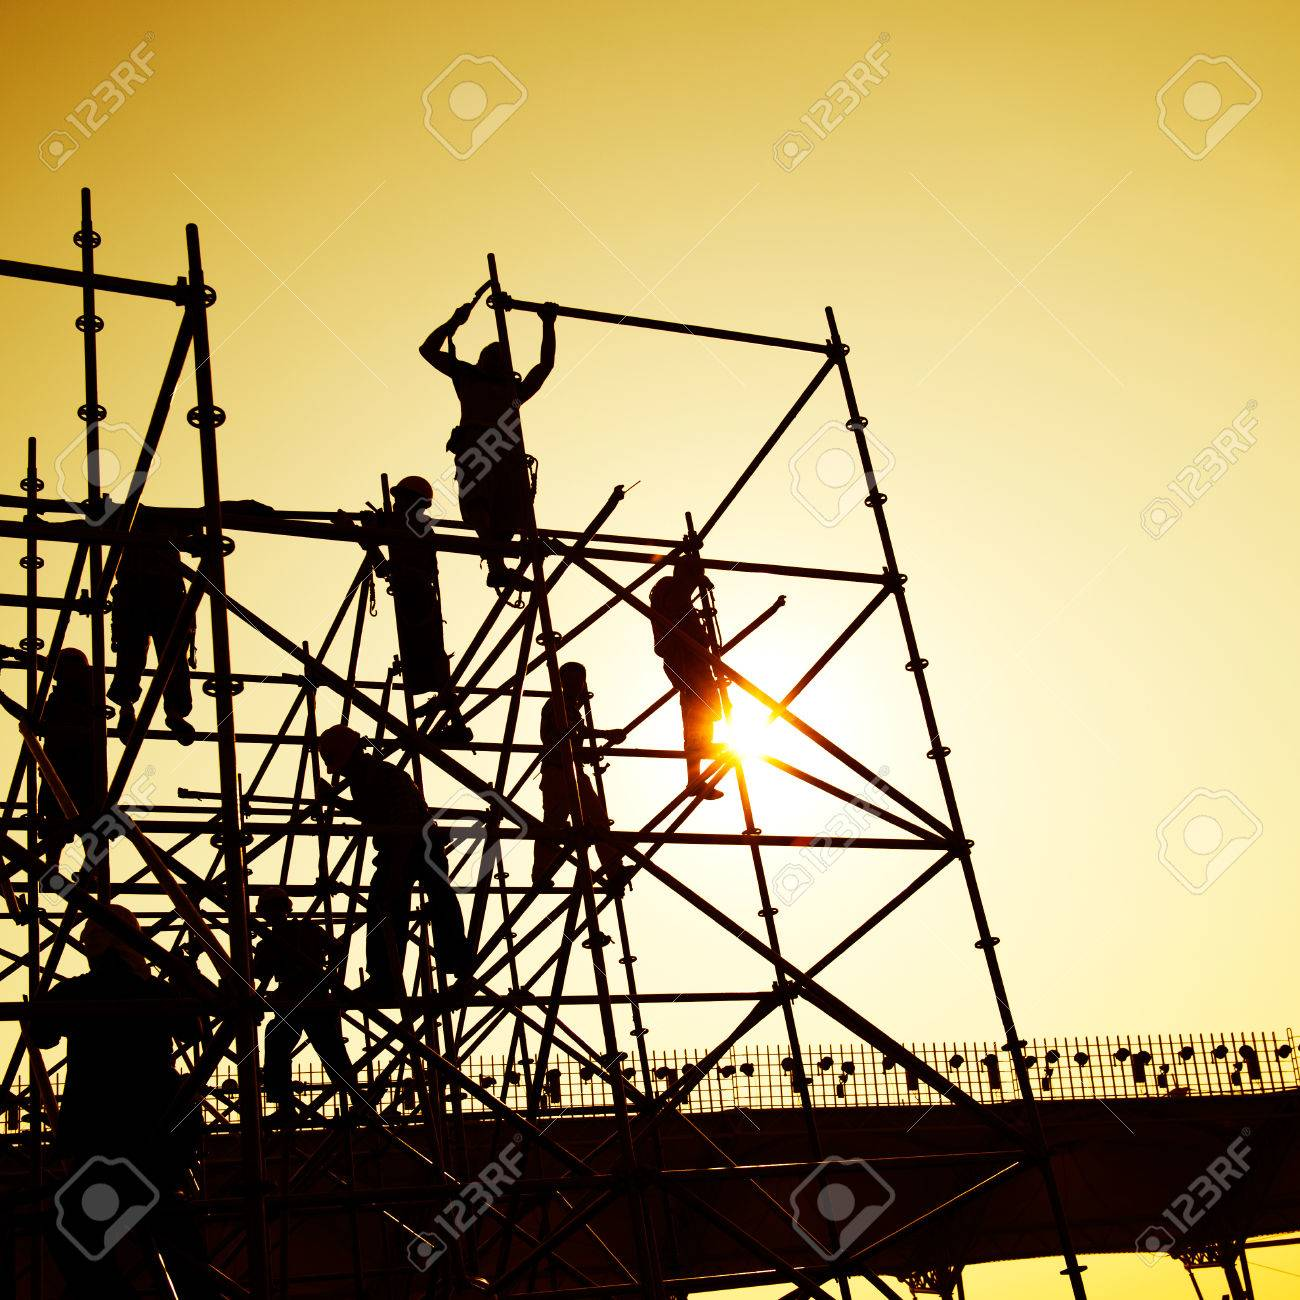 scaffold builder images stock pictures royalty scaffold scaffold builder construction workers working on scaffolding